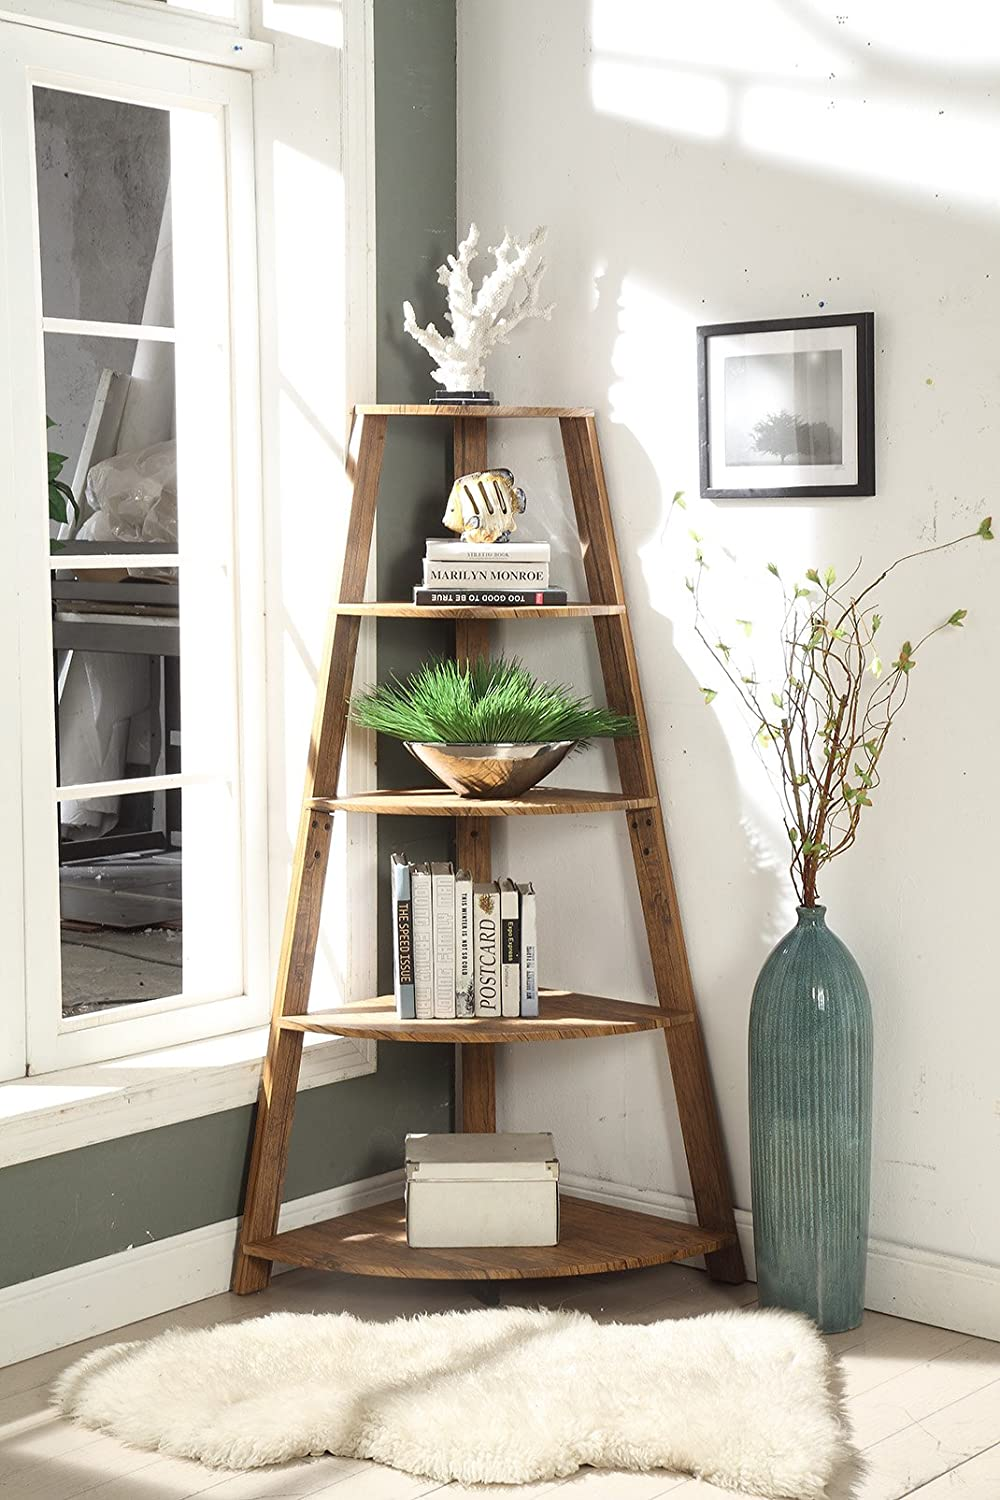 Vintage Brown Finish Wood Wall Corner 5-Tier Bookshelf Bookcase Accent Etagere eHomeProducts 1157